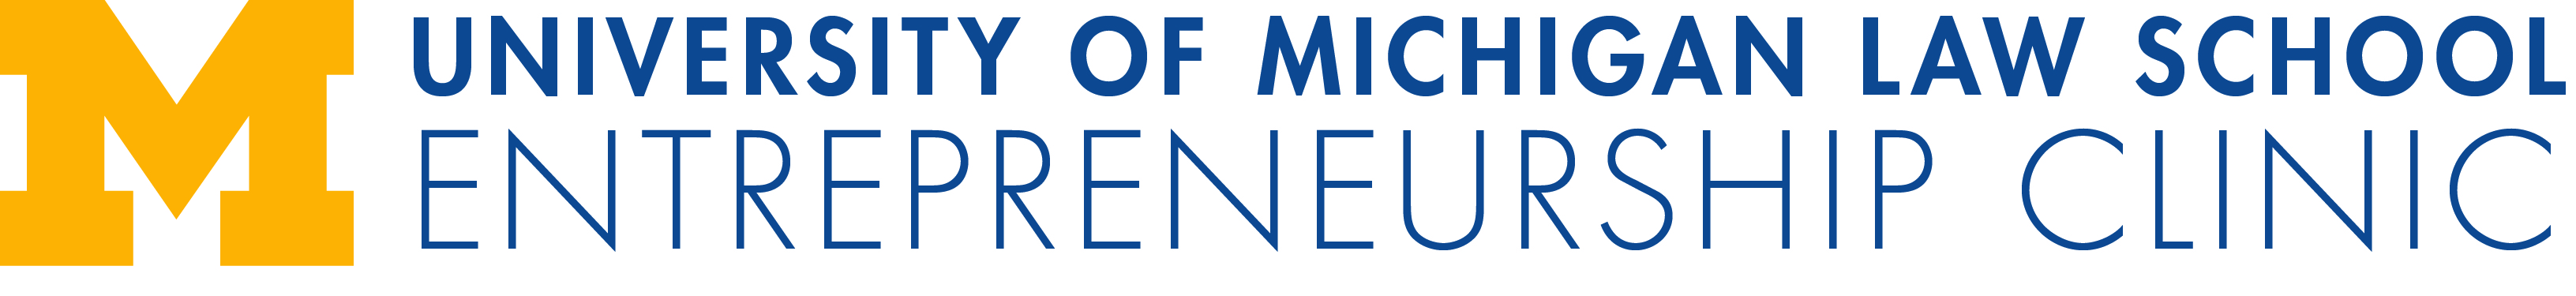 University of Michigan Entrepreneurship Clinic LibCal